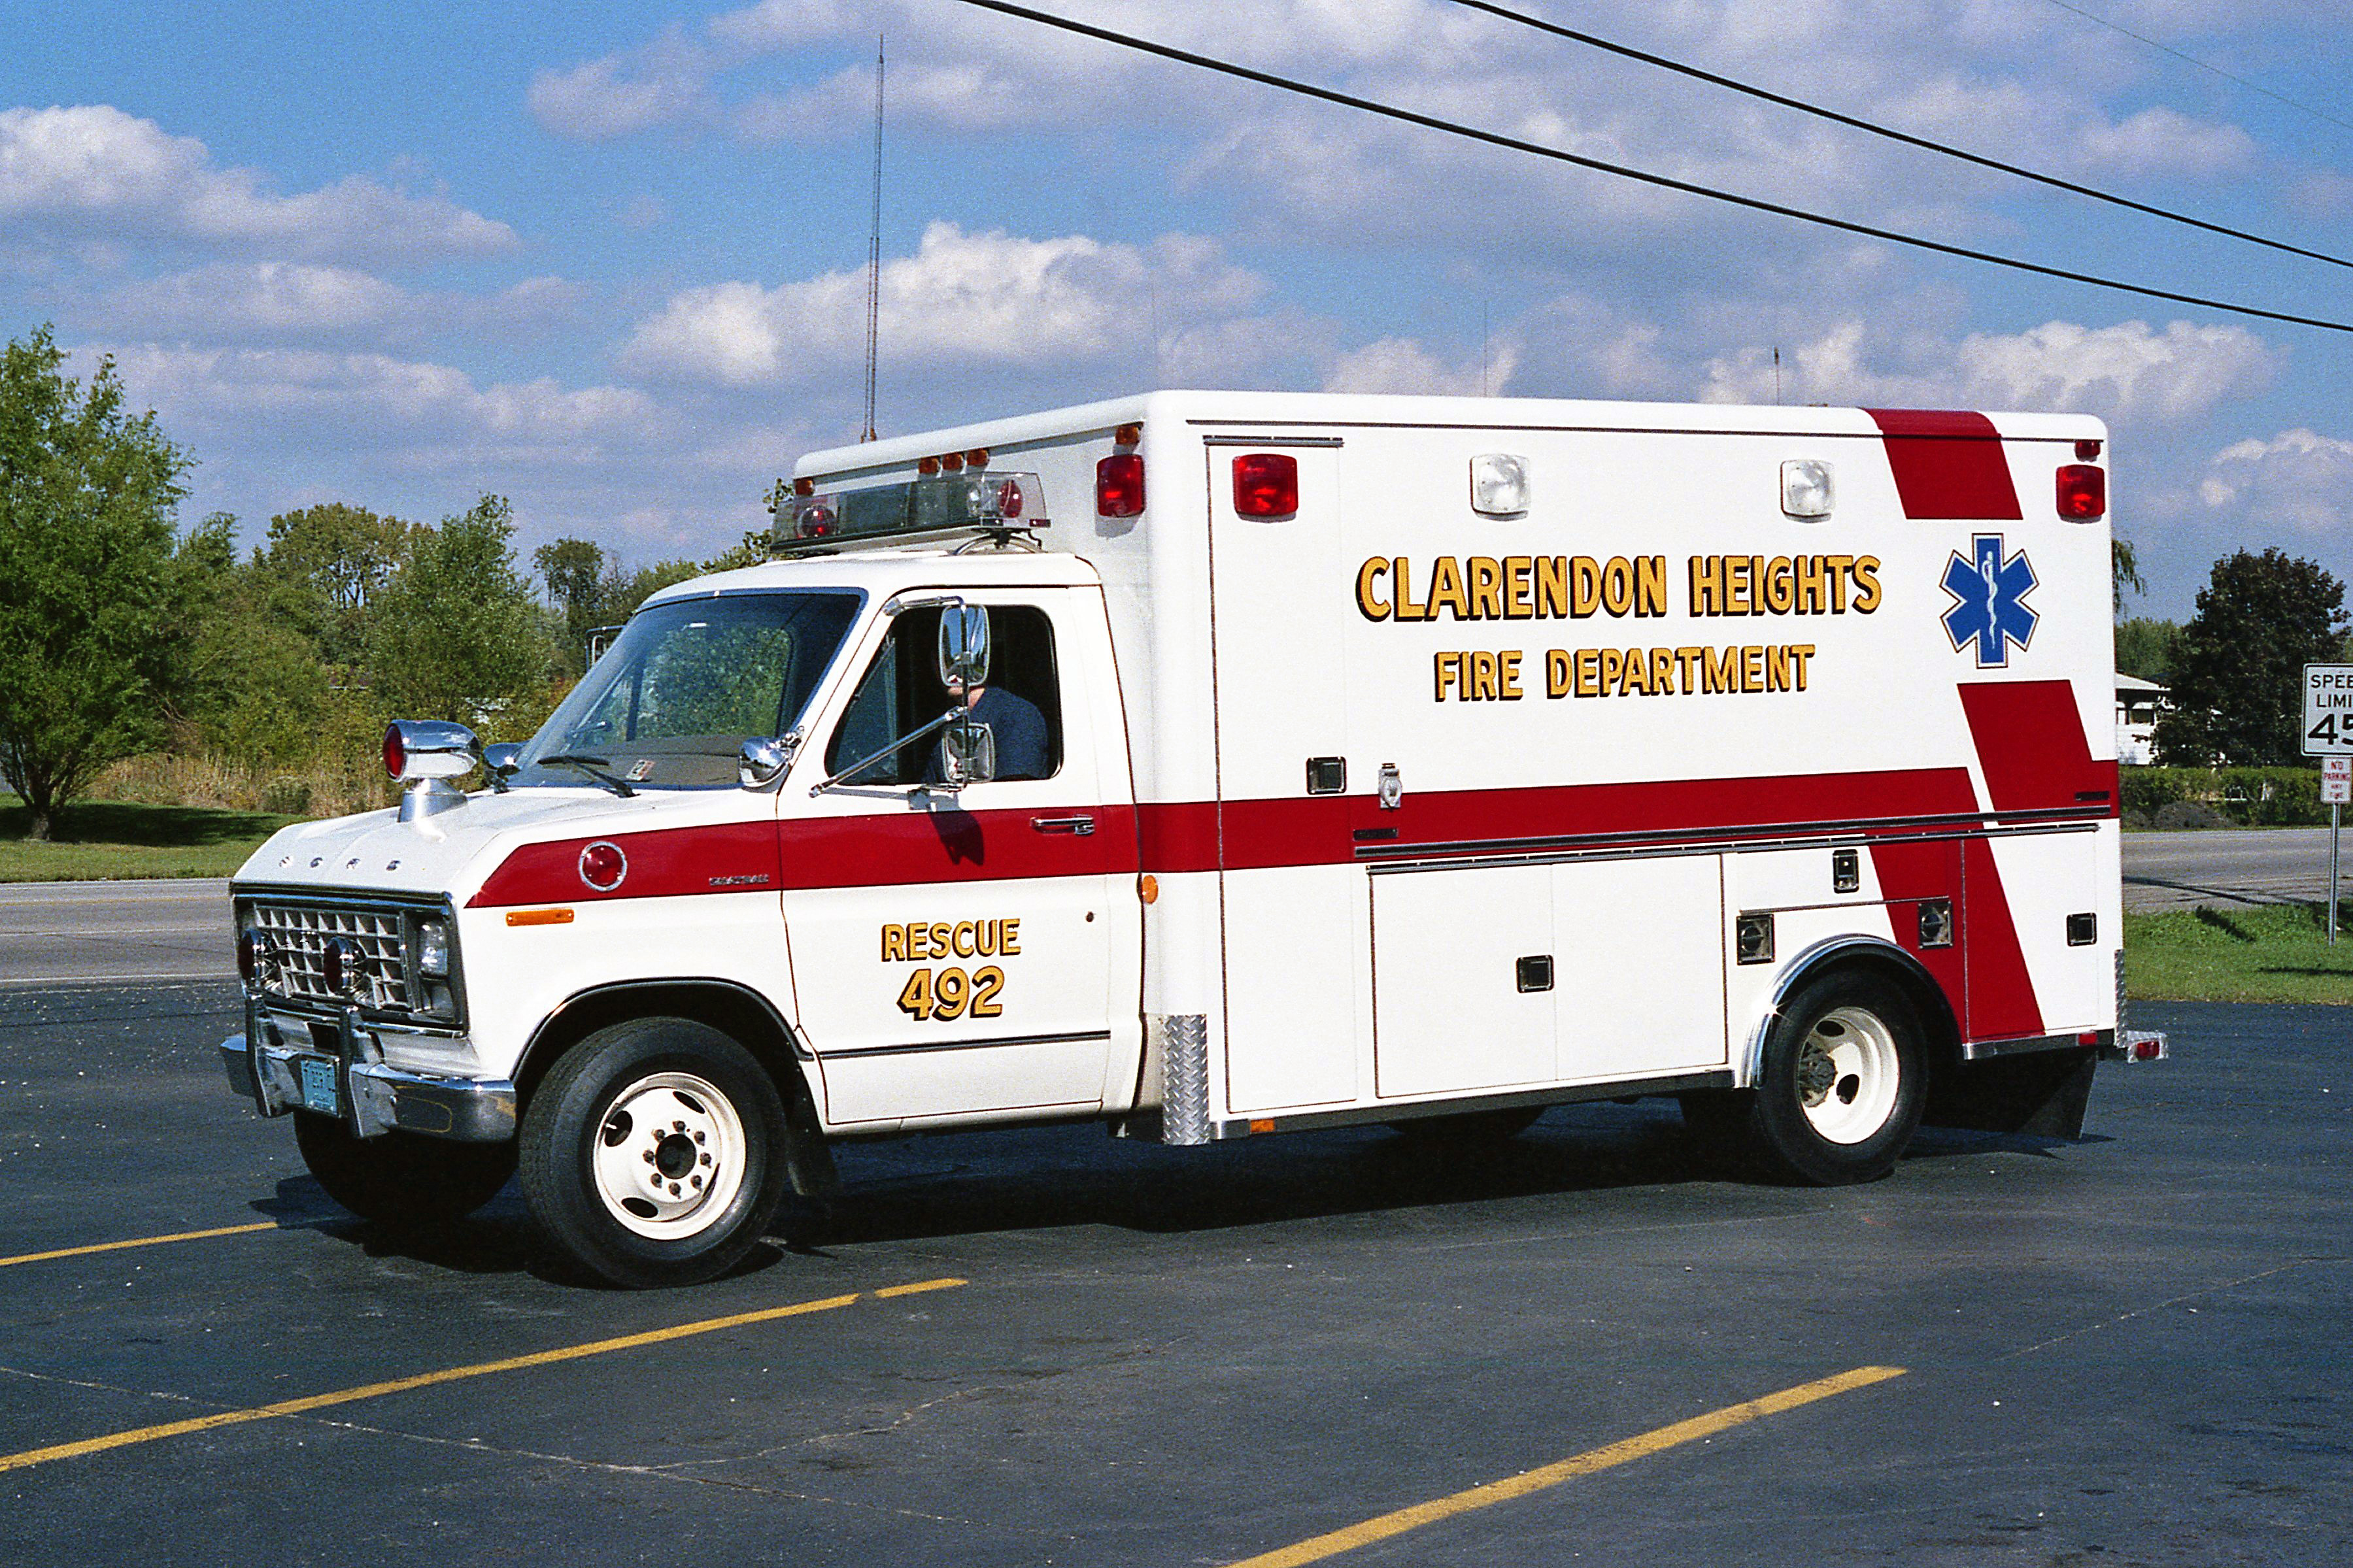 CLARENDON HEIGHTS FPD RES.492 DRIVERS SIDE